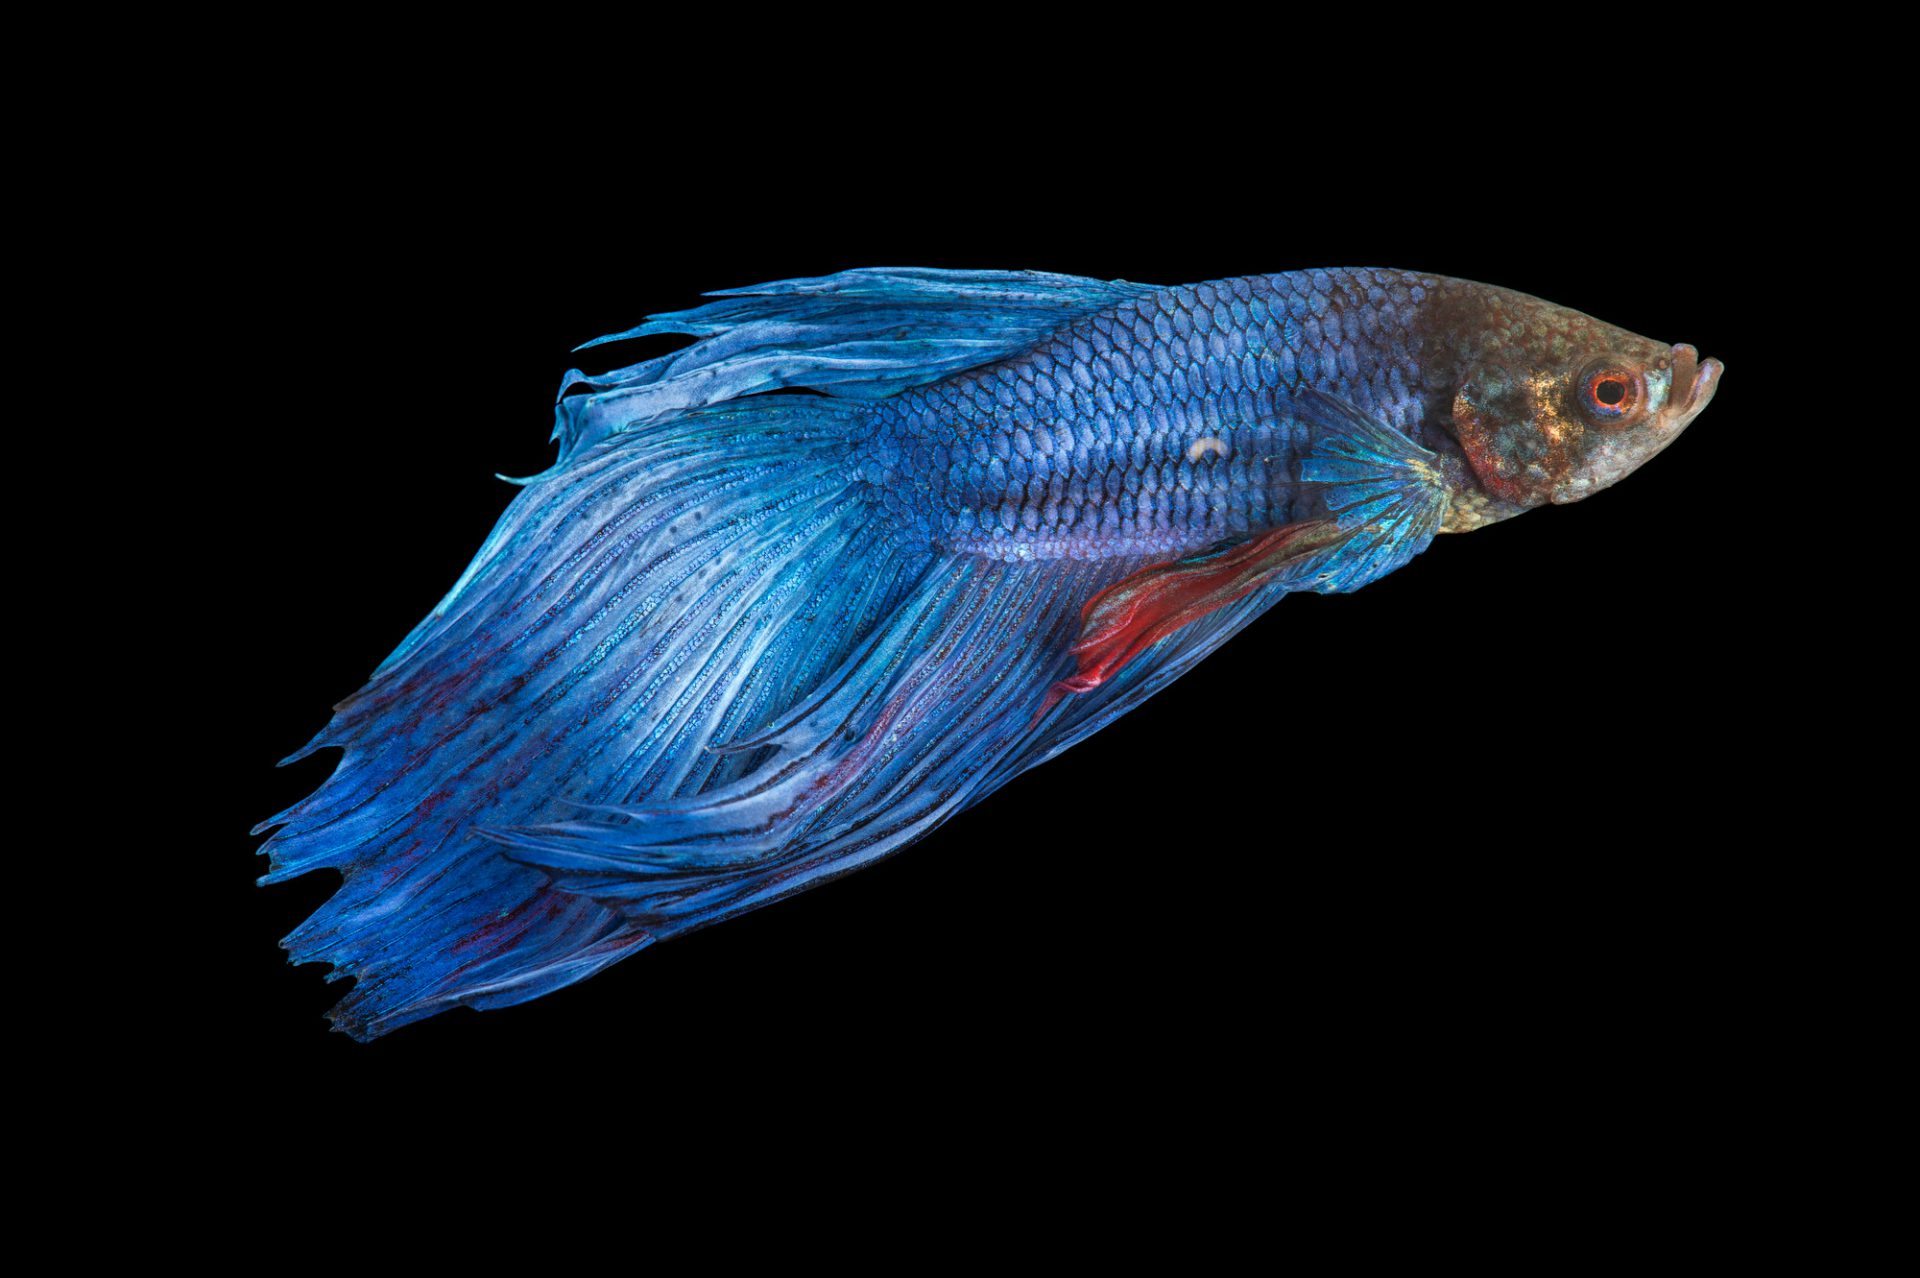 Picture of a vulnerable male Siamese fighting fish (Betta splendens) at Pure Aquariums.